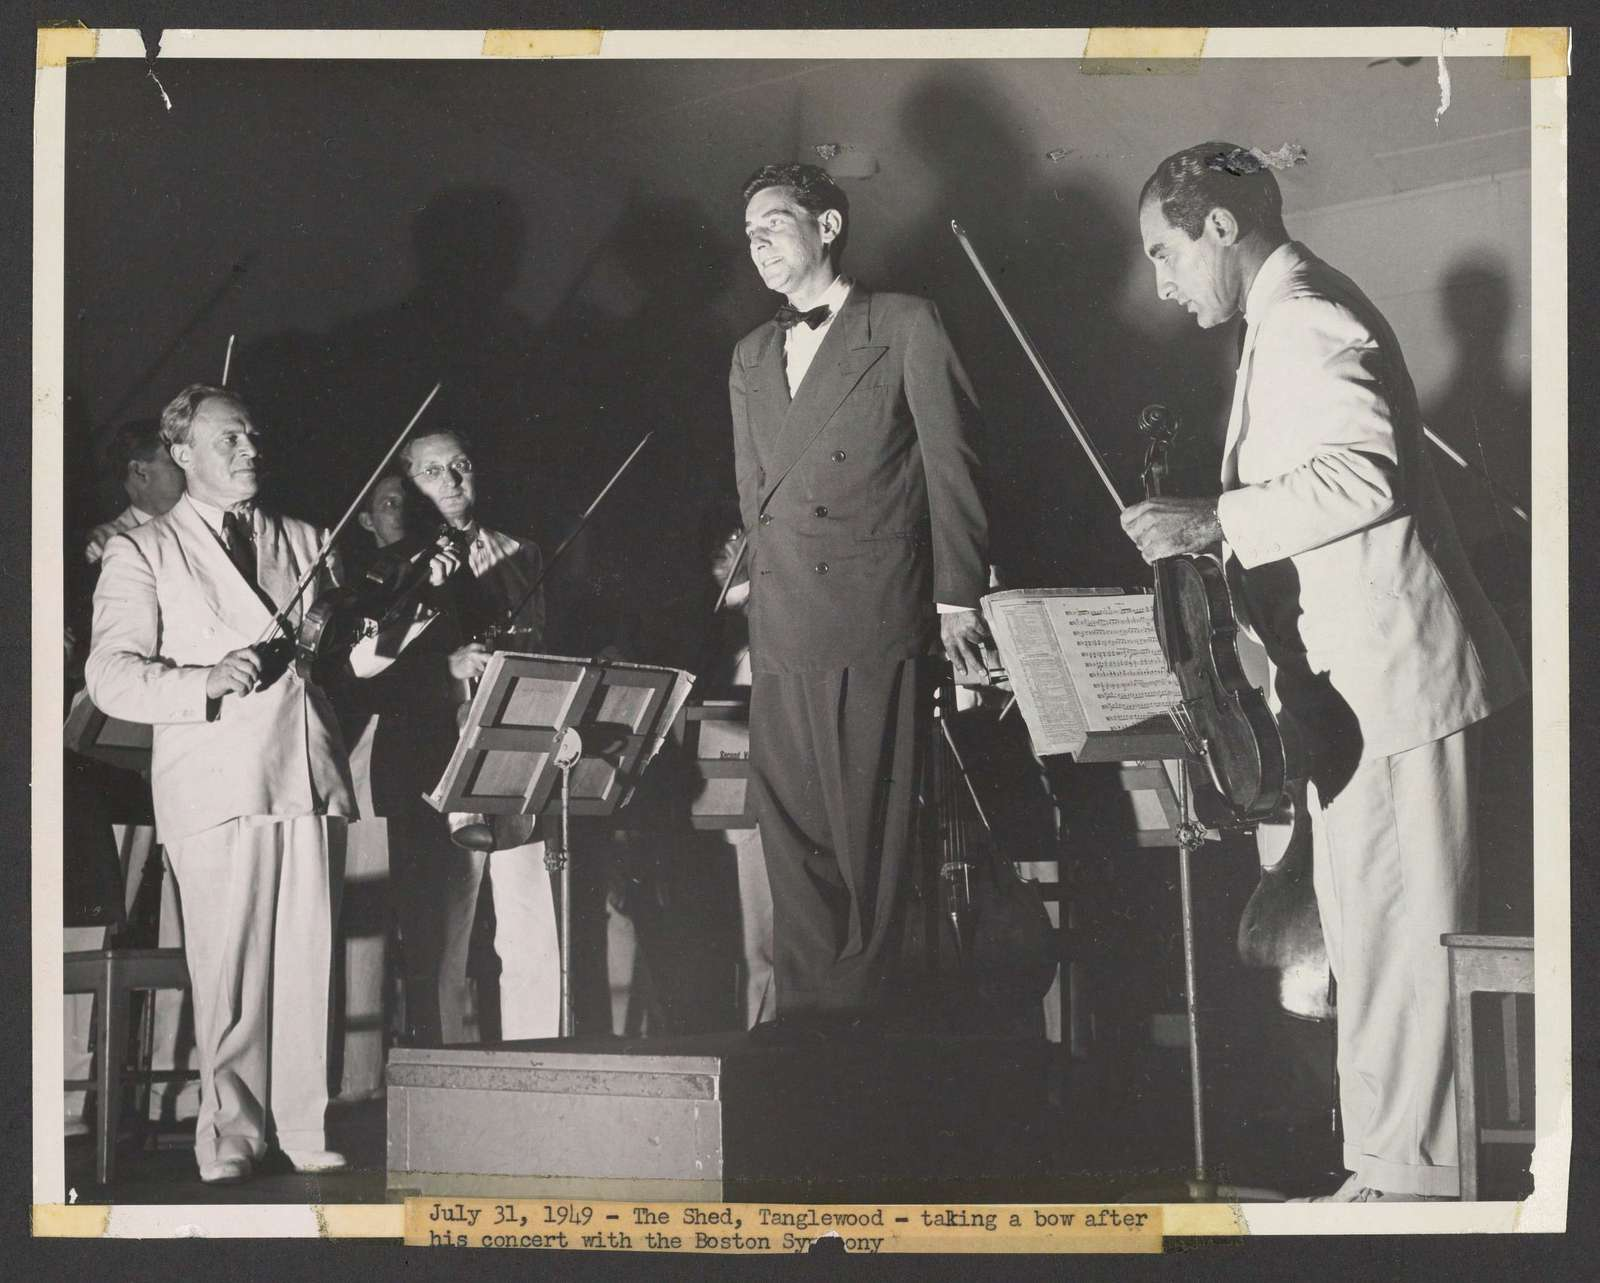 Leonard Bernstein after conducting the Boston Symphony at Tanglewood, July 31, 1949